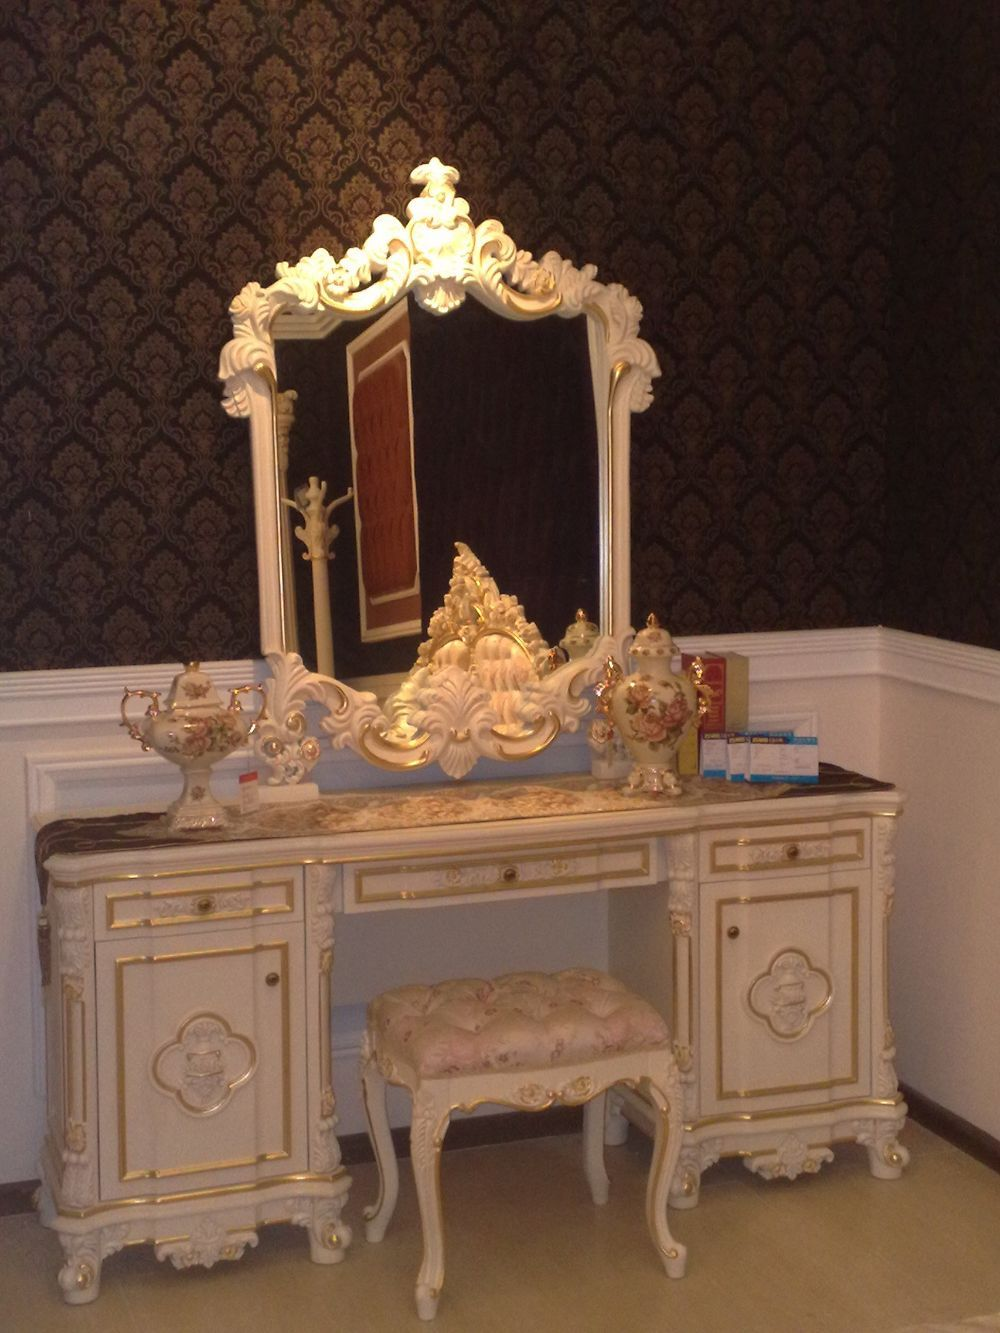 Vanity dressing table boutique boudoir style vanity fair vanity dressing table boutique boudoir style geotapseo Choice Image